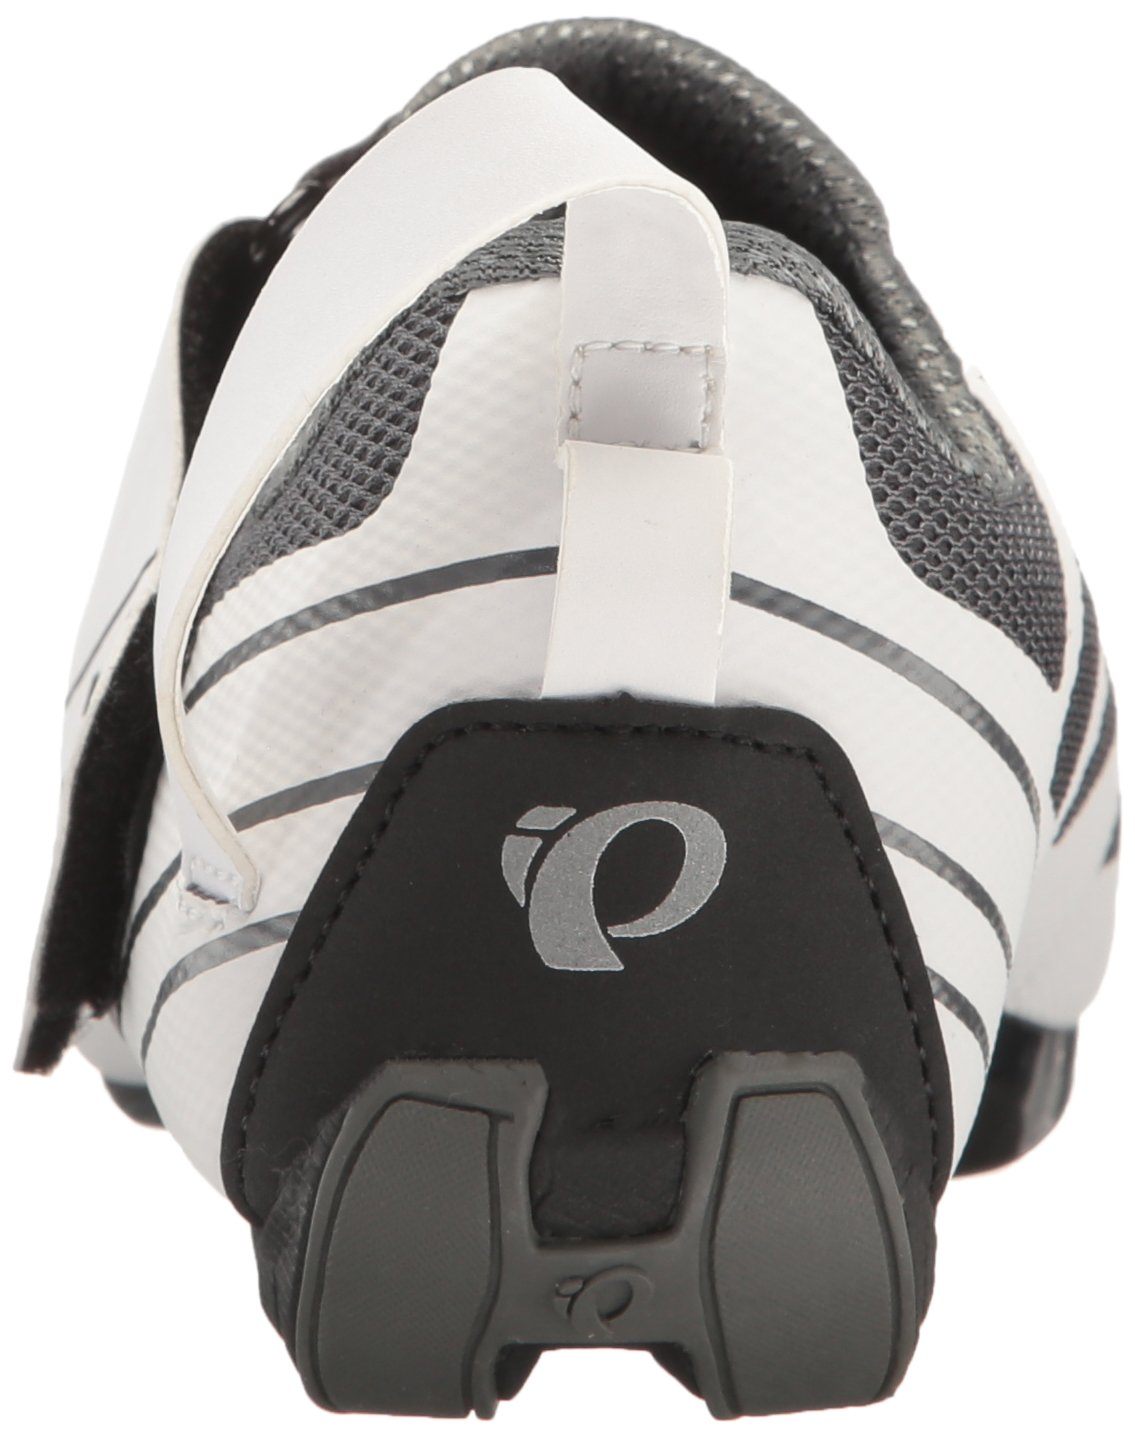 Pearl iZUMi Women's W Tri Fly Select V6 Cycling Shoe, White/Shadow Grey, 42 EU/10 B US by Pearl iZUMi (Image #2)